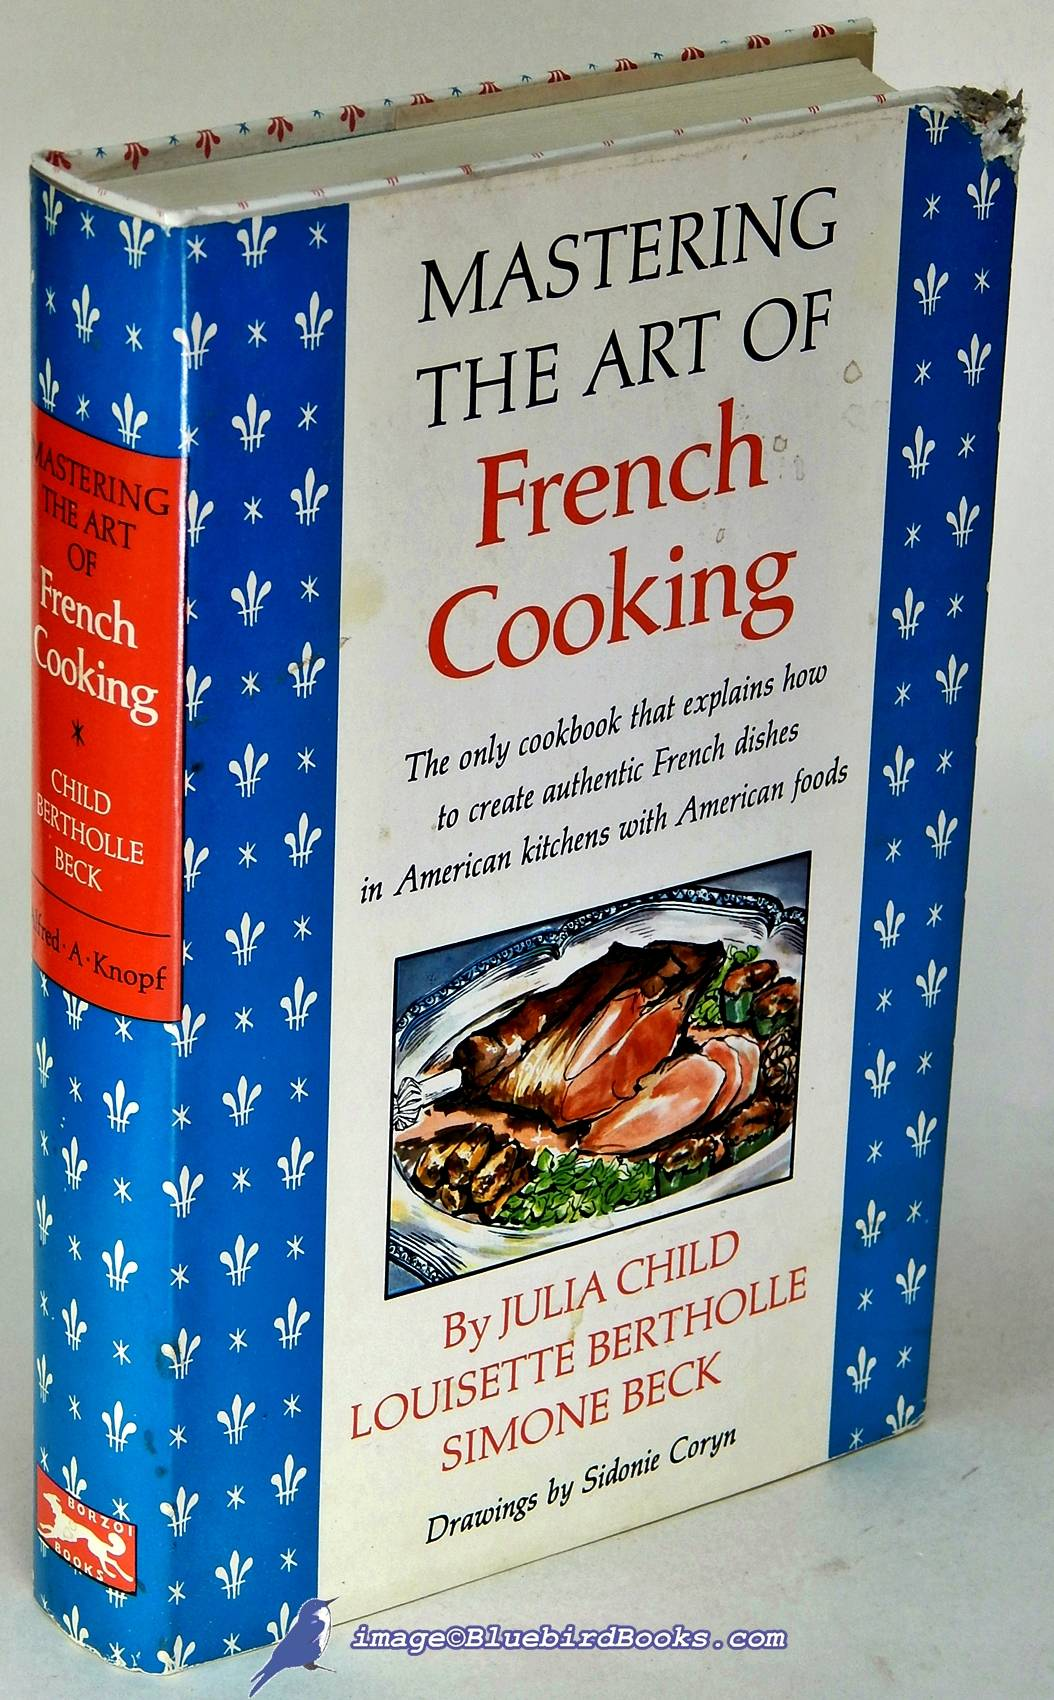 Mastering the Art of French Cooking BECK, Simone; BERTHOLLE, Louisette; CHILD, Julia [Very Good] [Hardcover]